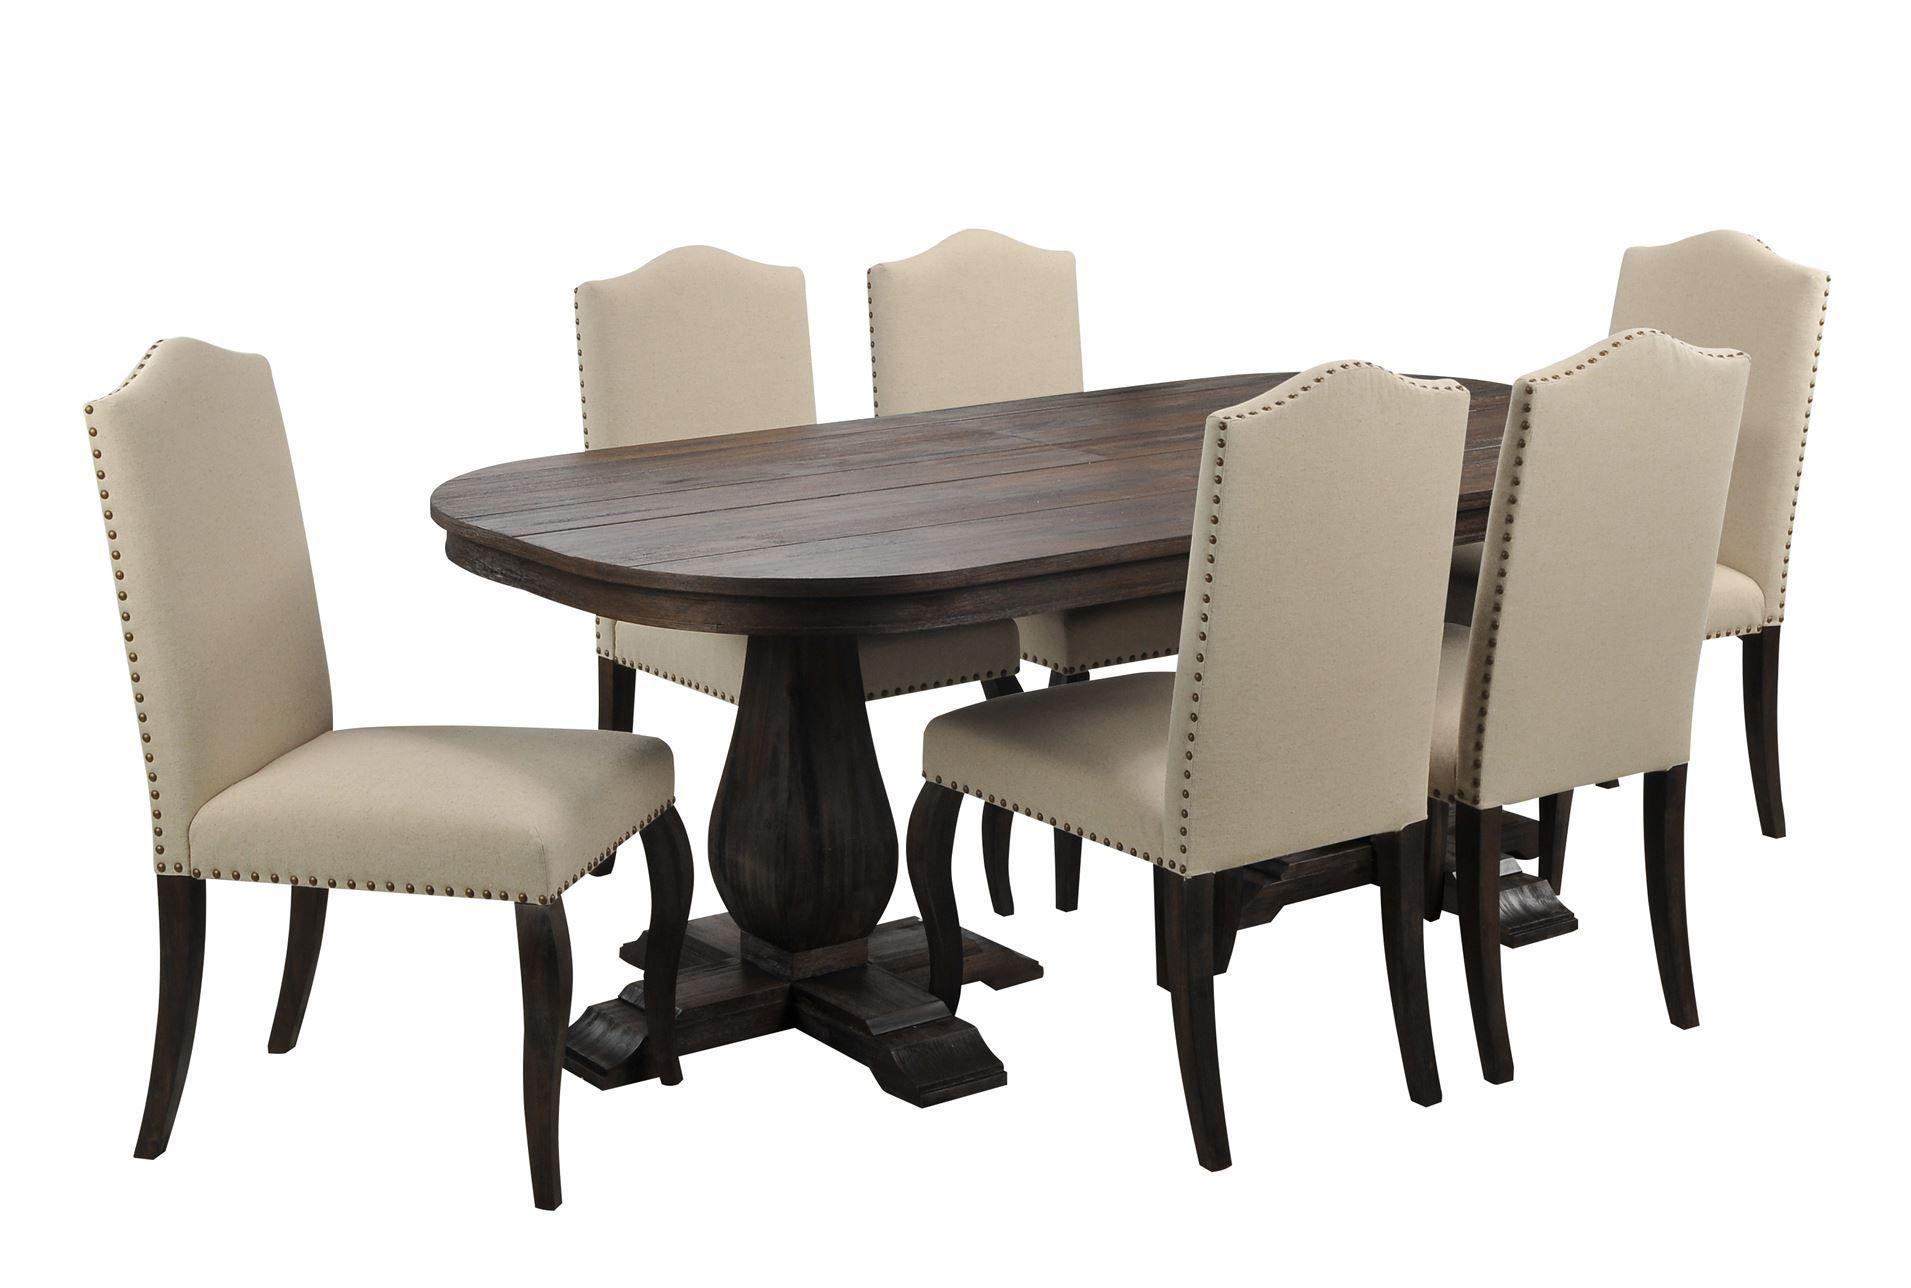 Diego 7 Piece Dining Set $1495 livingspaces